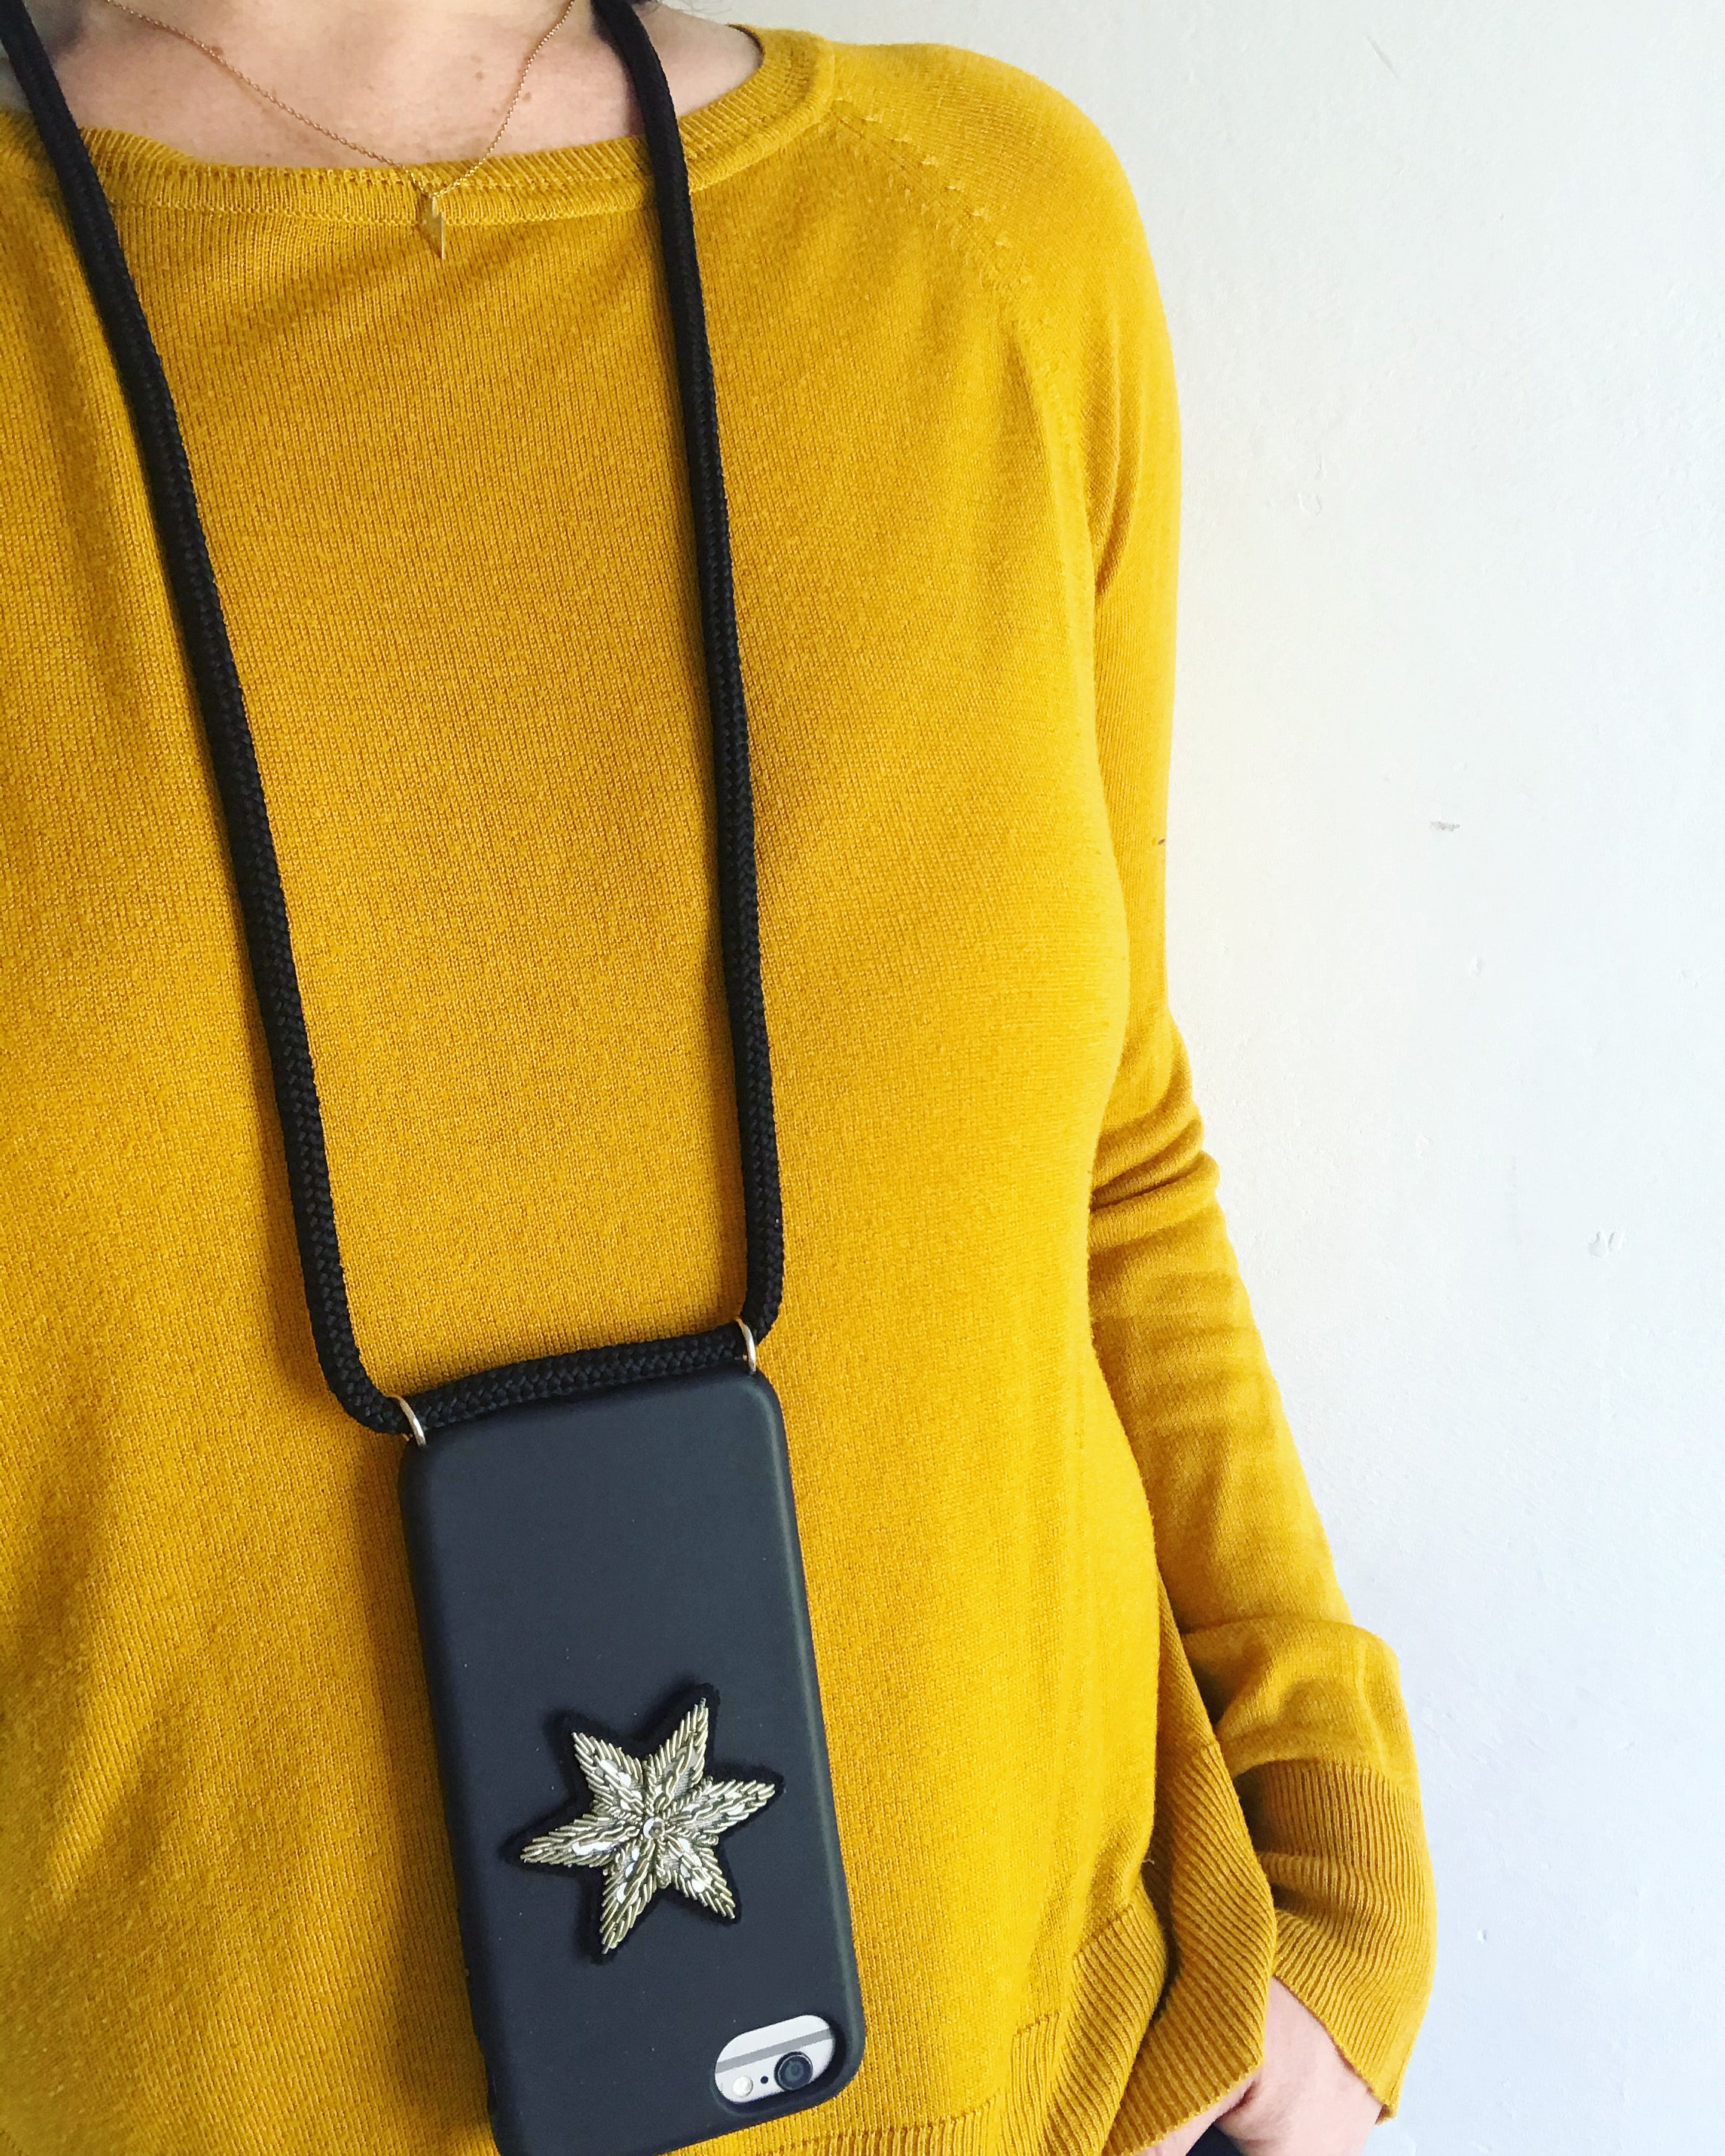 Phone holder with a star